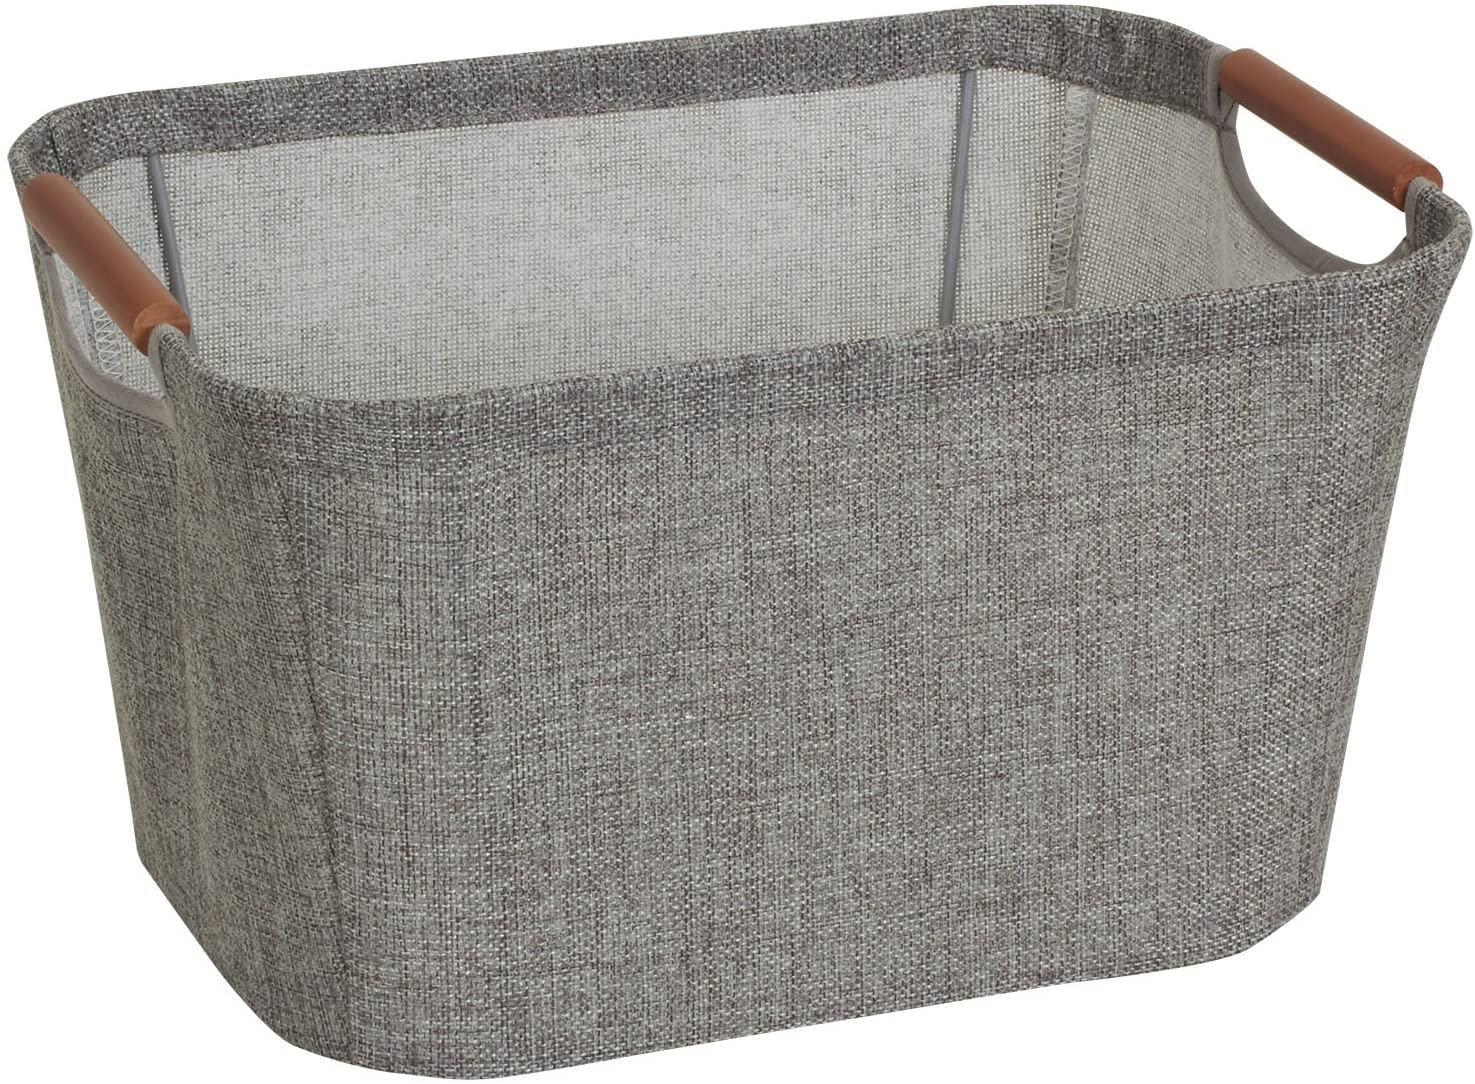 Household Essentials 623 Small Tapered Soft-Side Storage Bin with Wood Handles, Gray, Grey